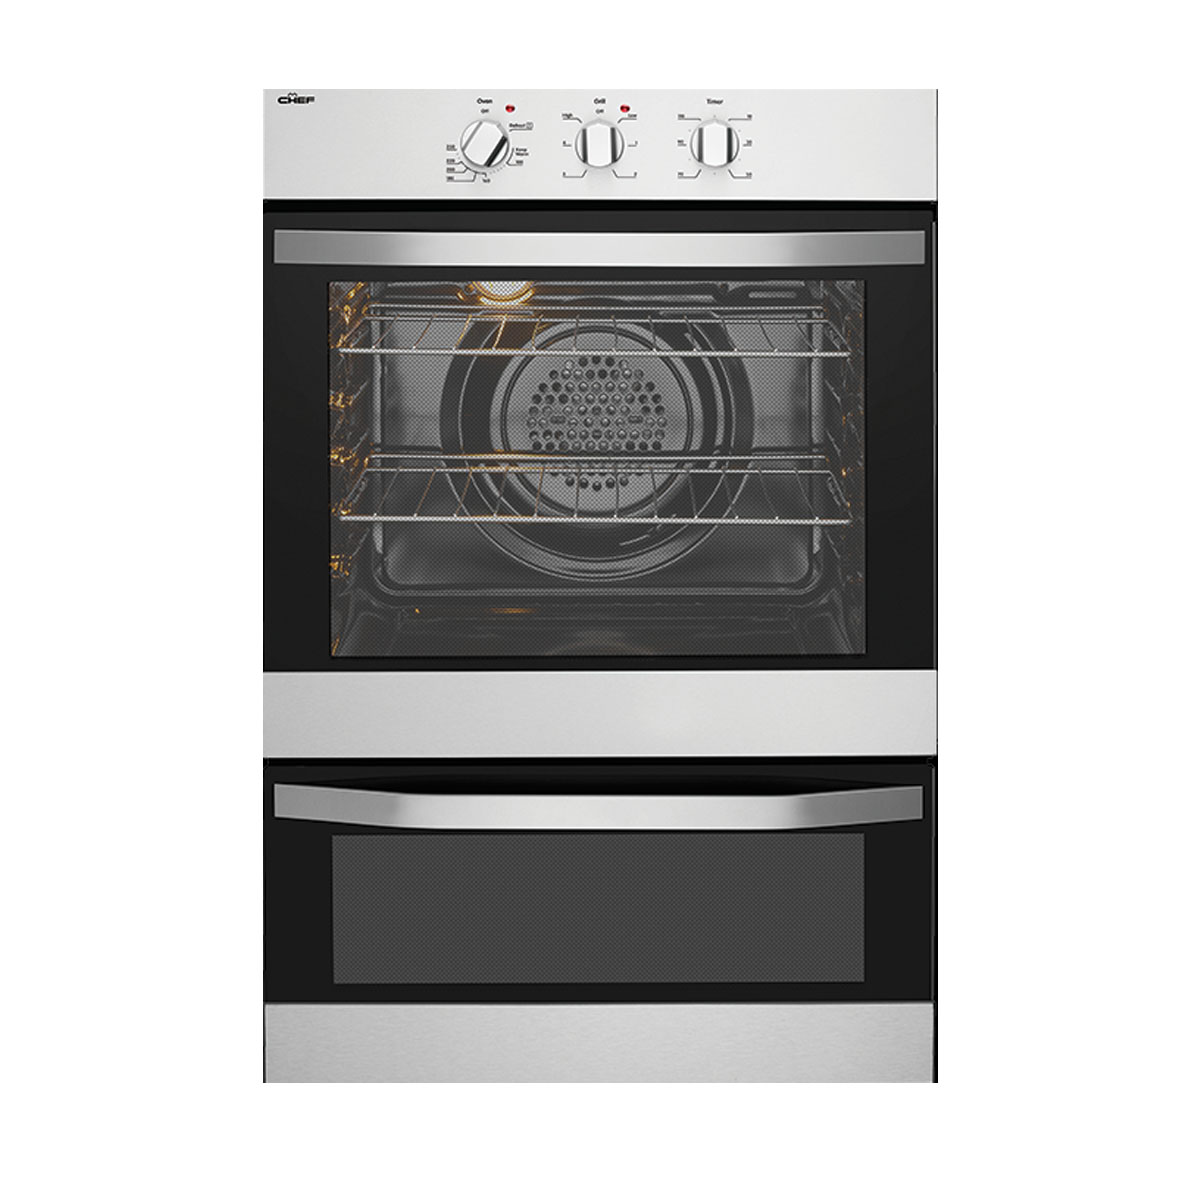 Chef CVE662SA Electric Wall Oven